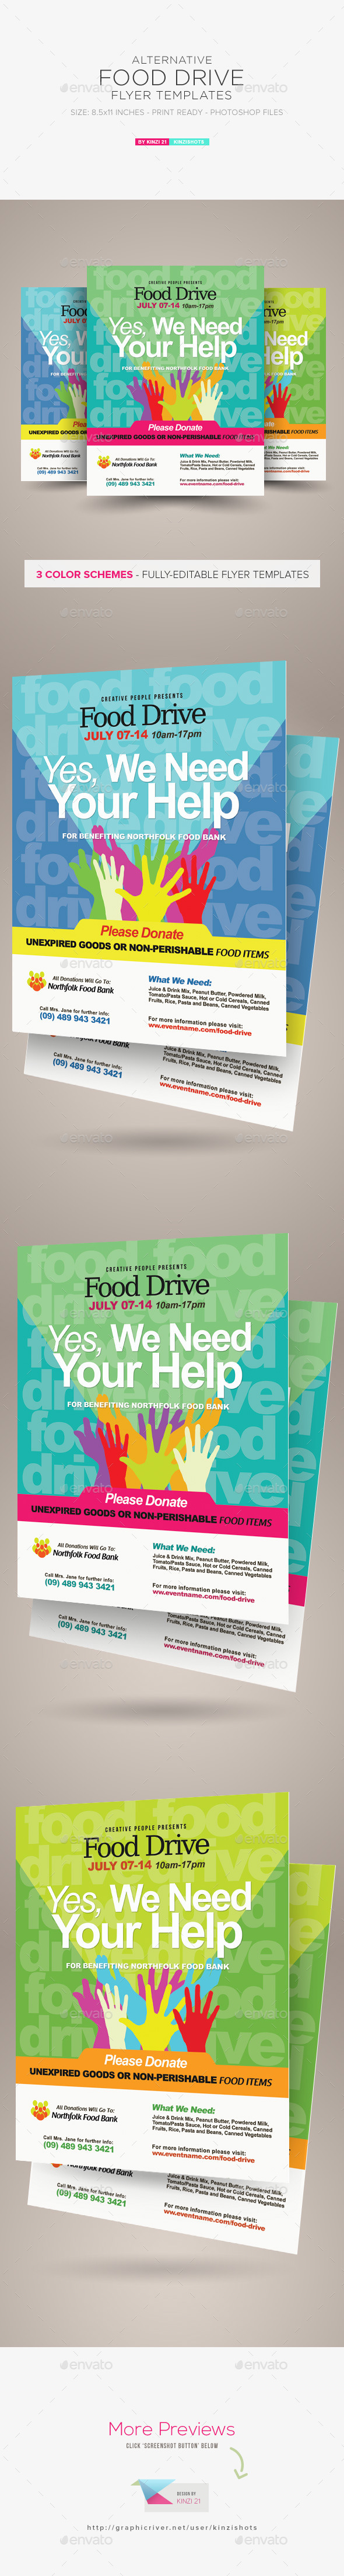 food drive flyer samples